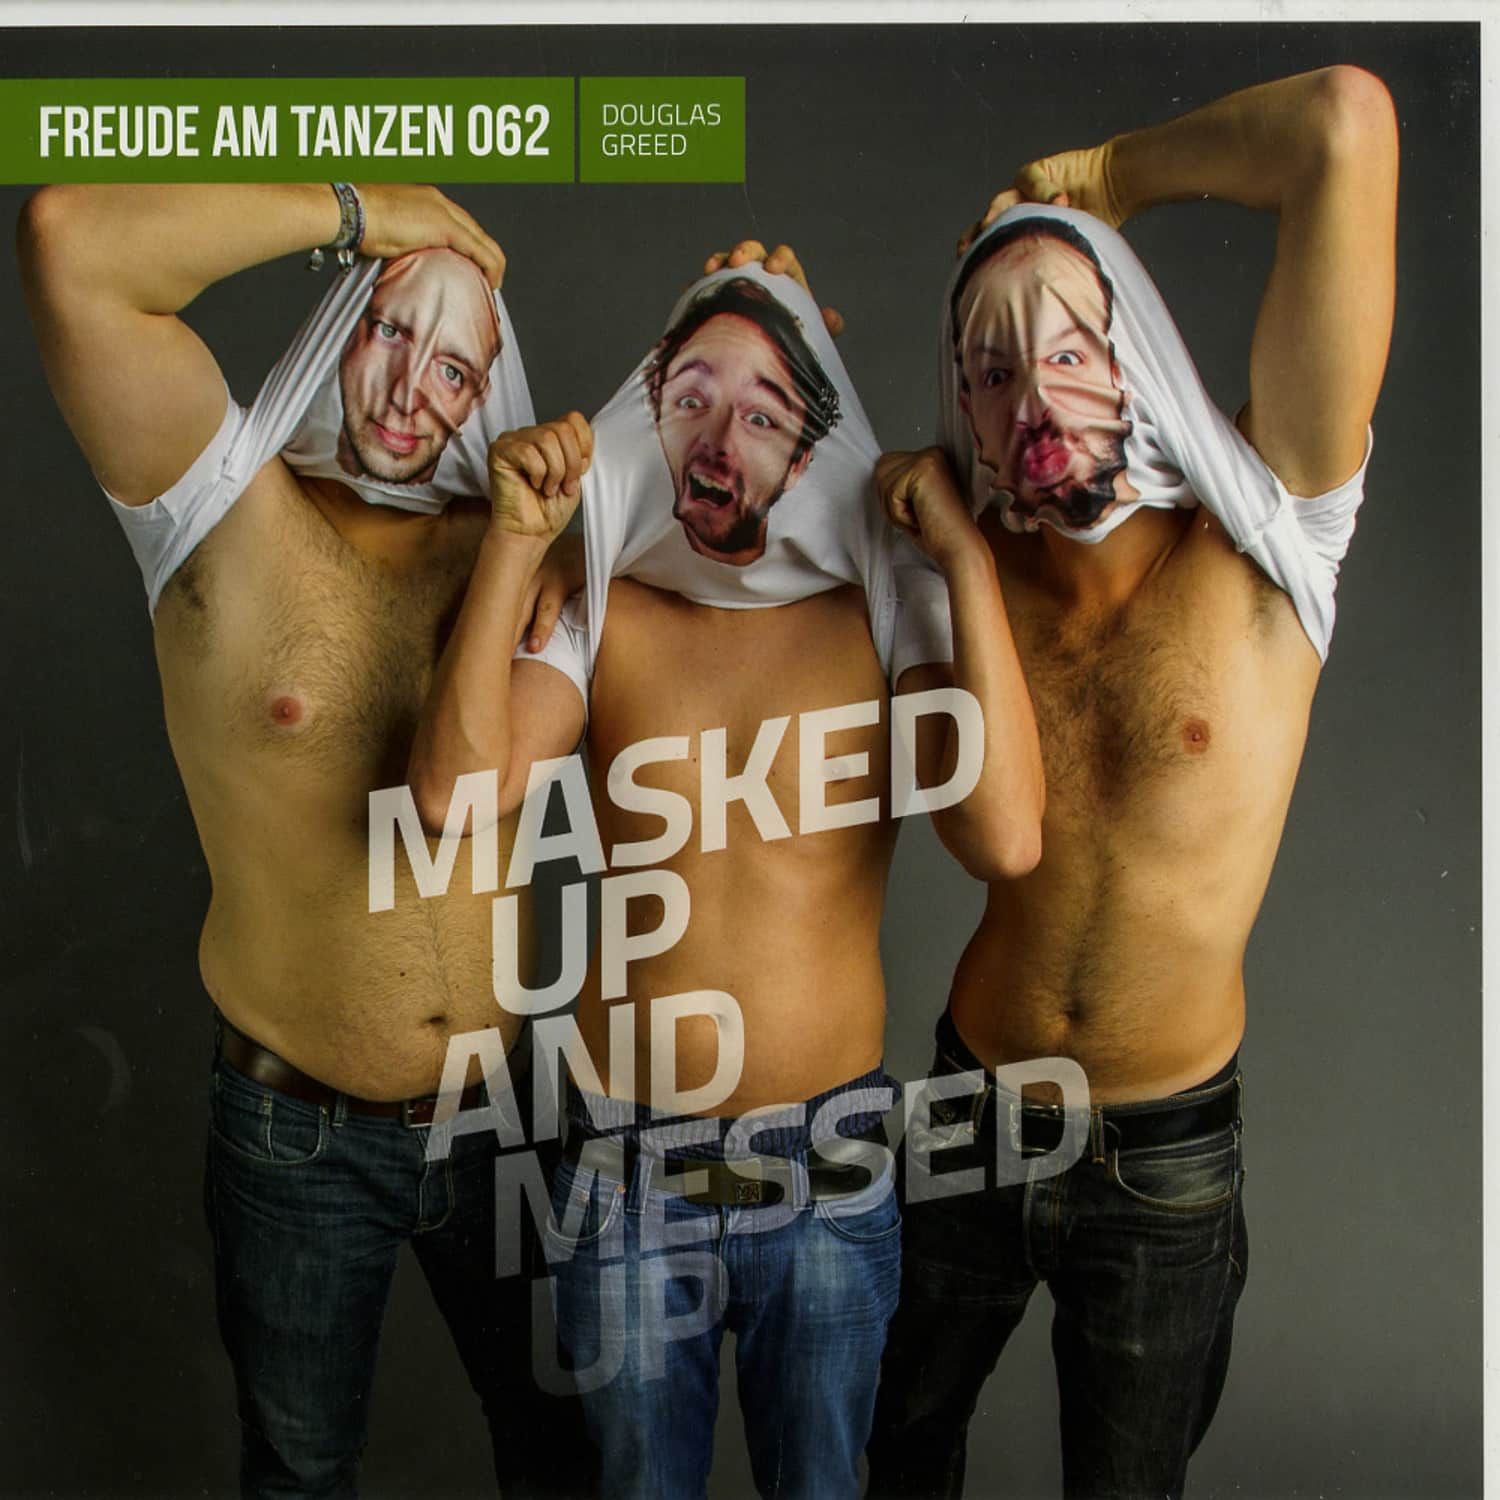 Douglas Greed - MASKED UP AND MESSED UP EP